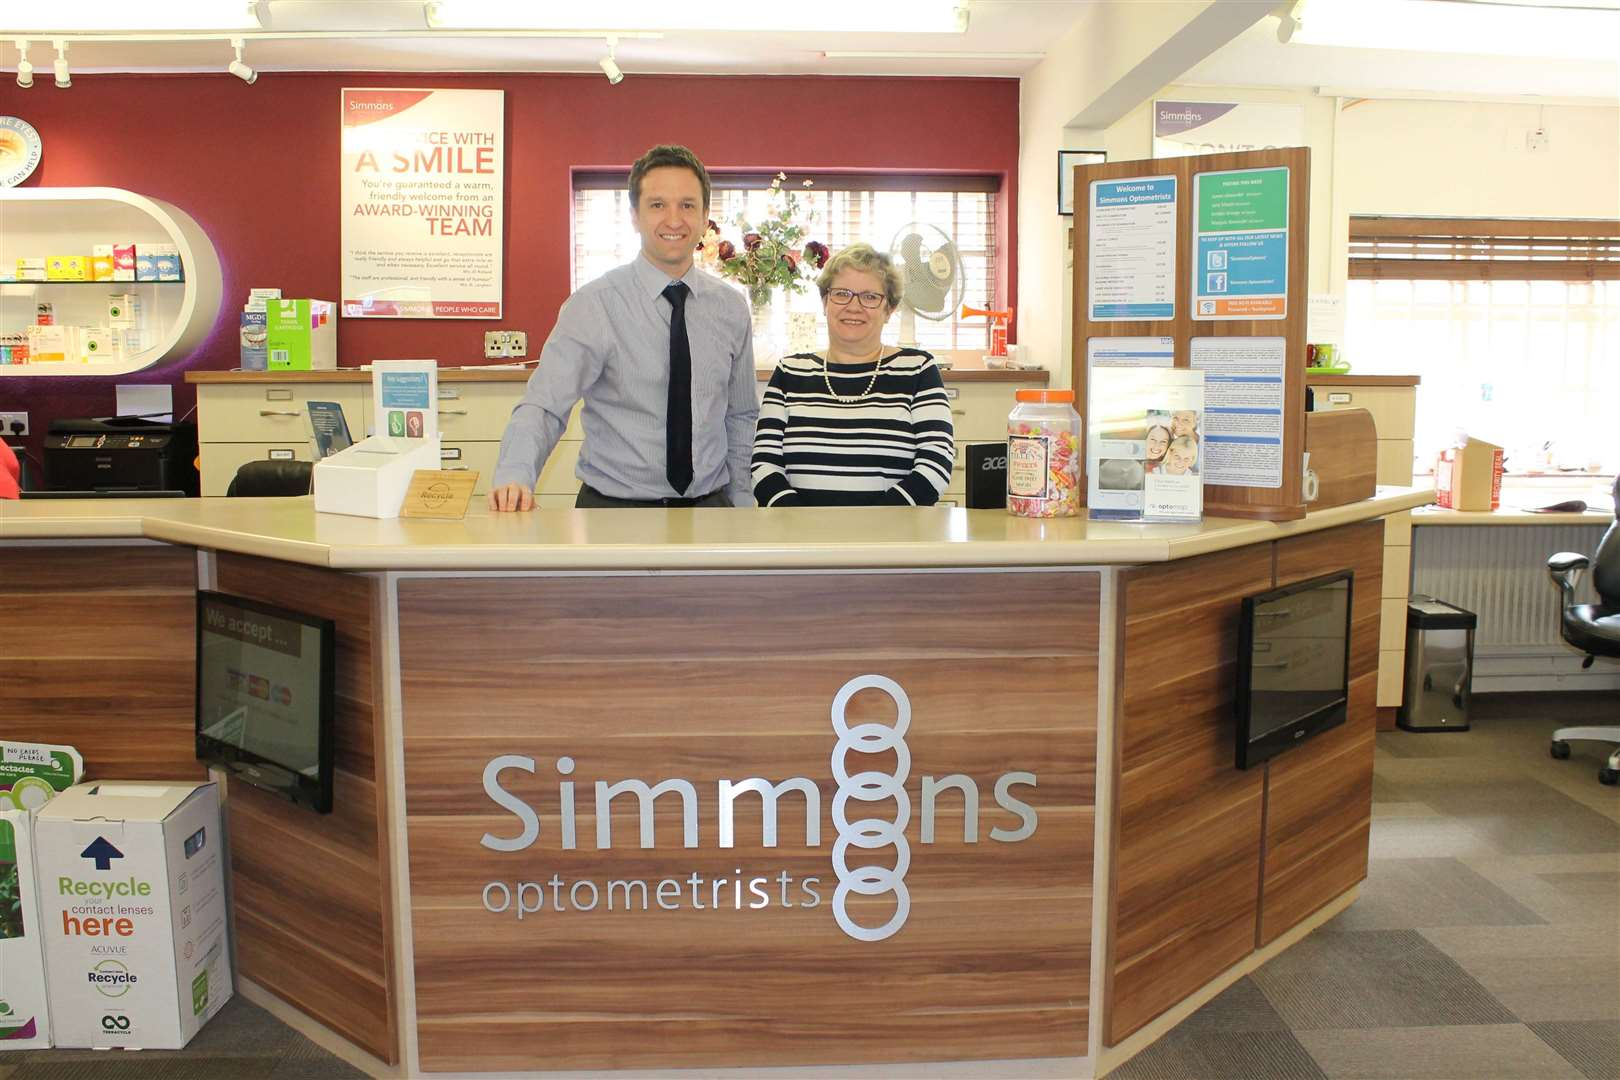 Simmons Optometrists received more than £40,000